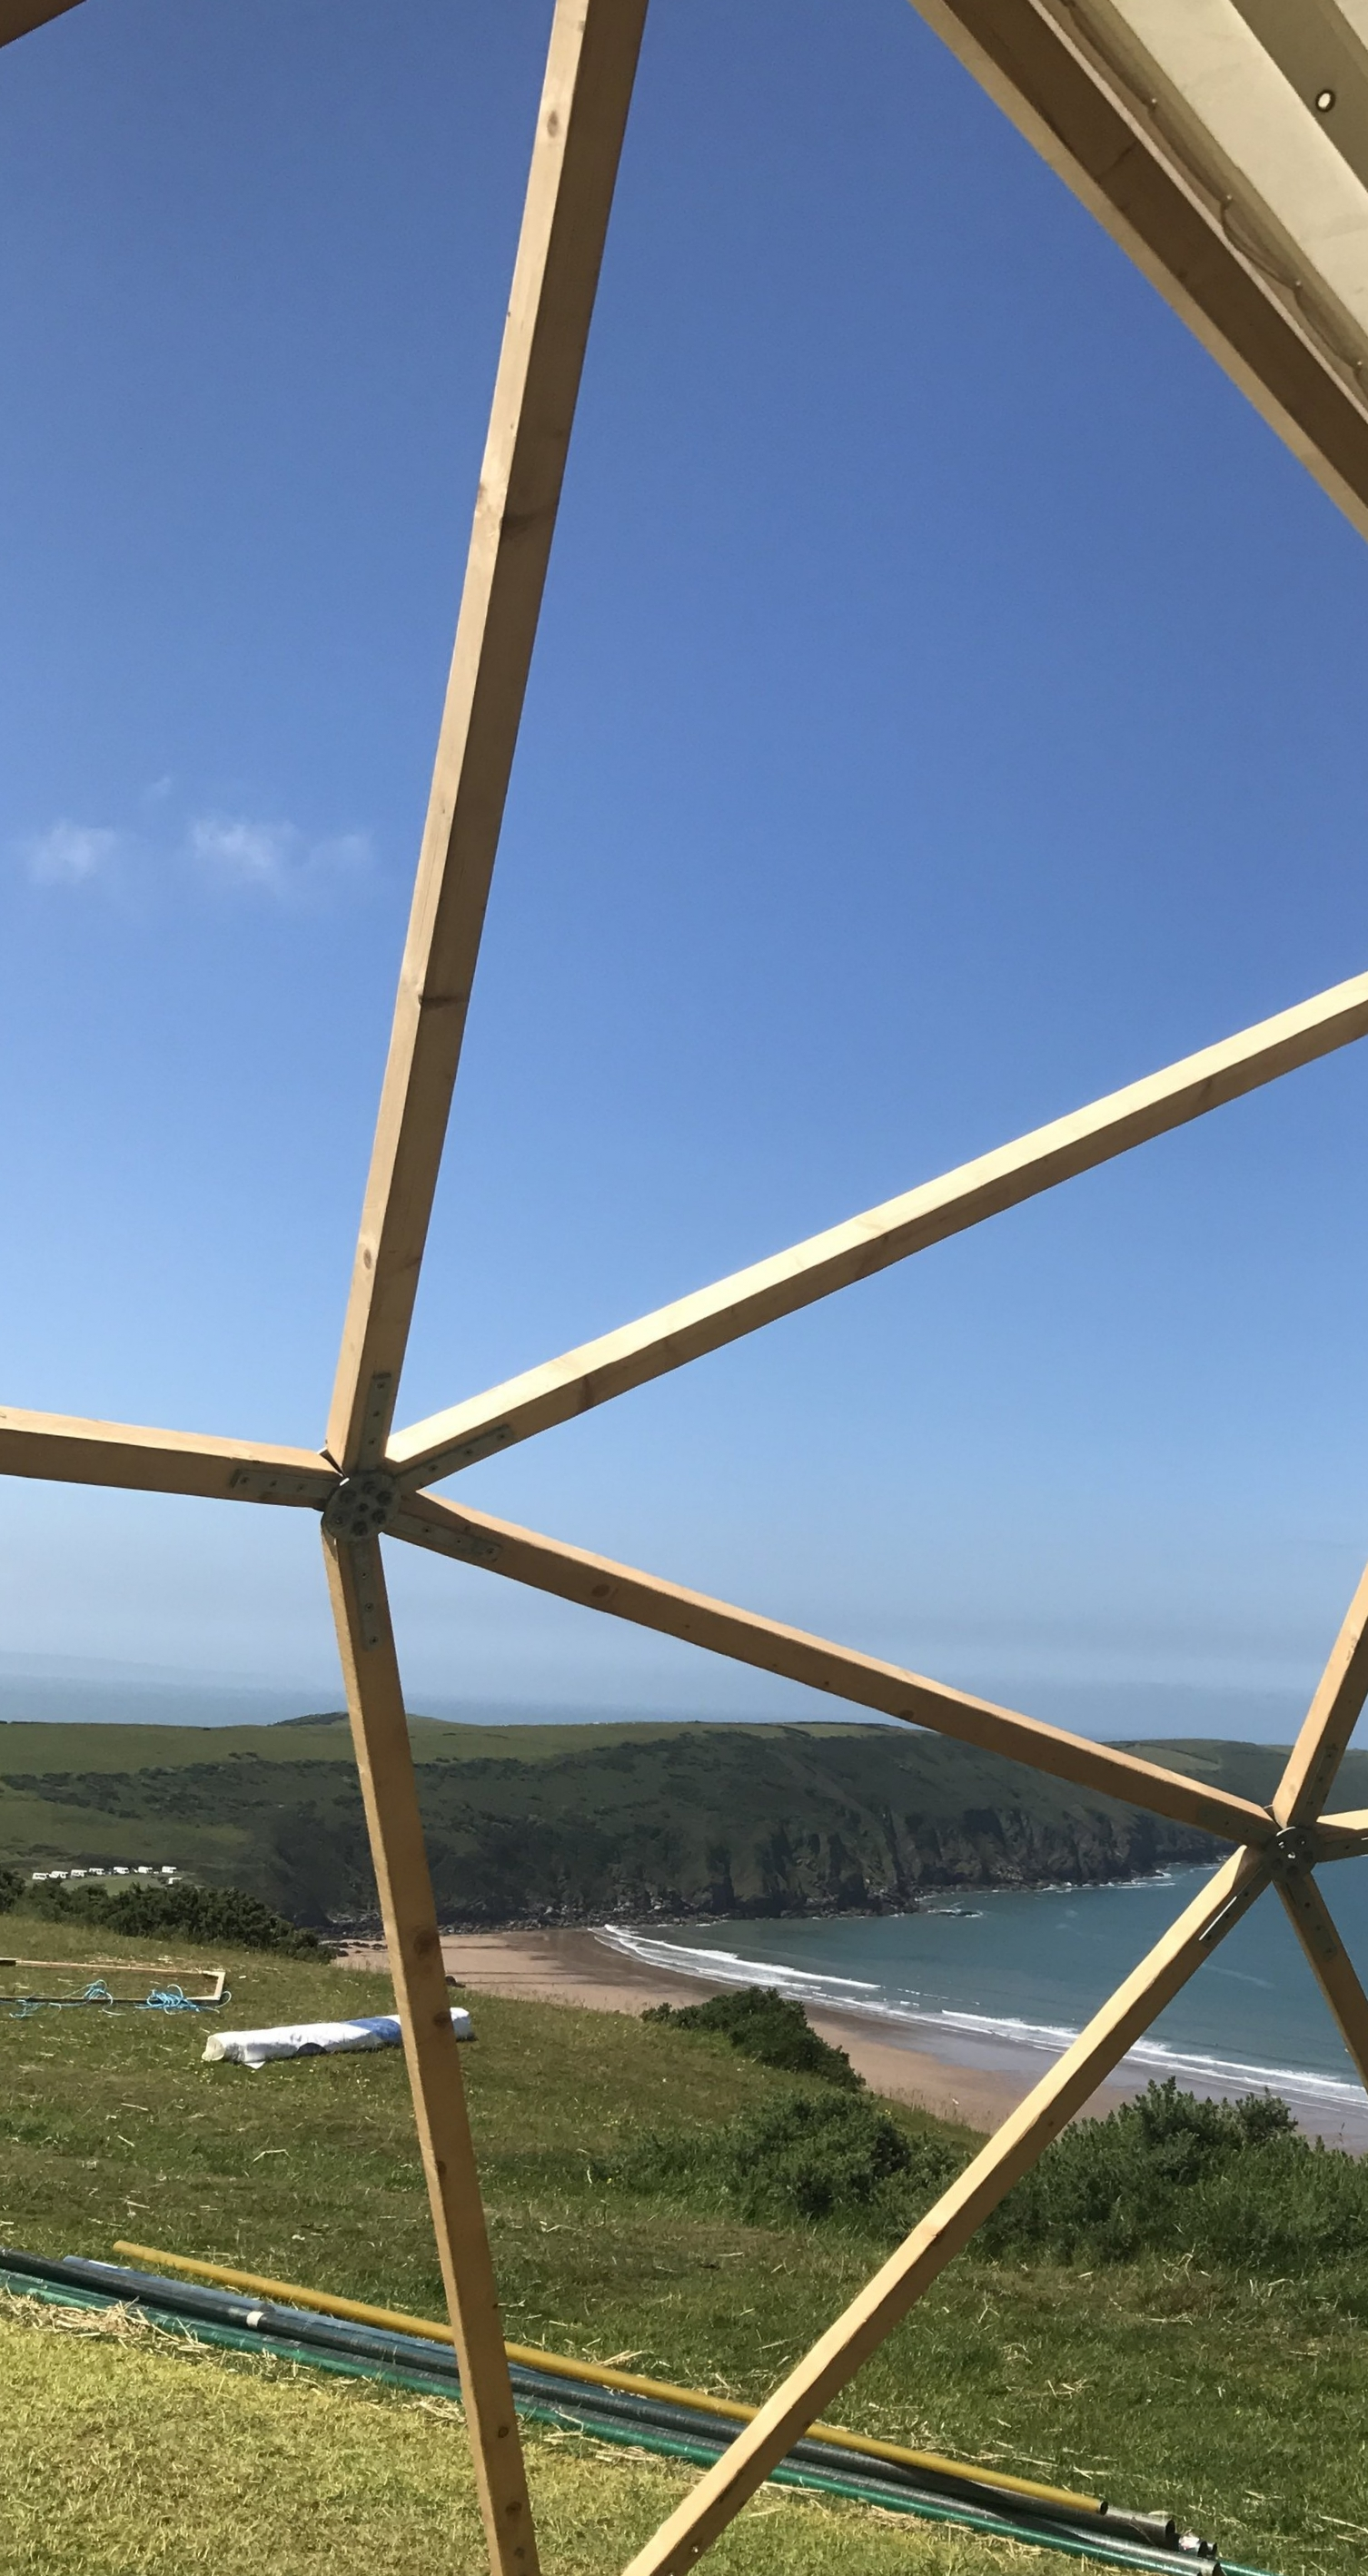 Just another fantastic viewpoint in North Devon